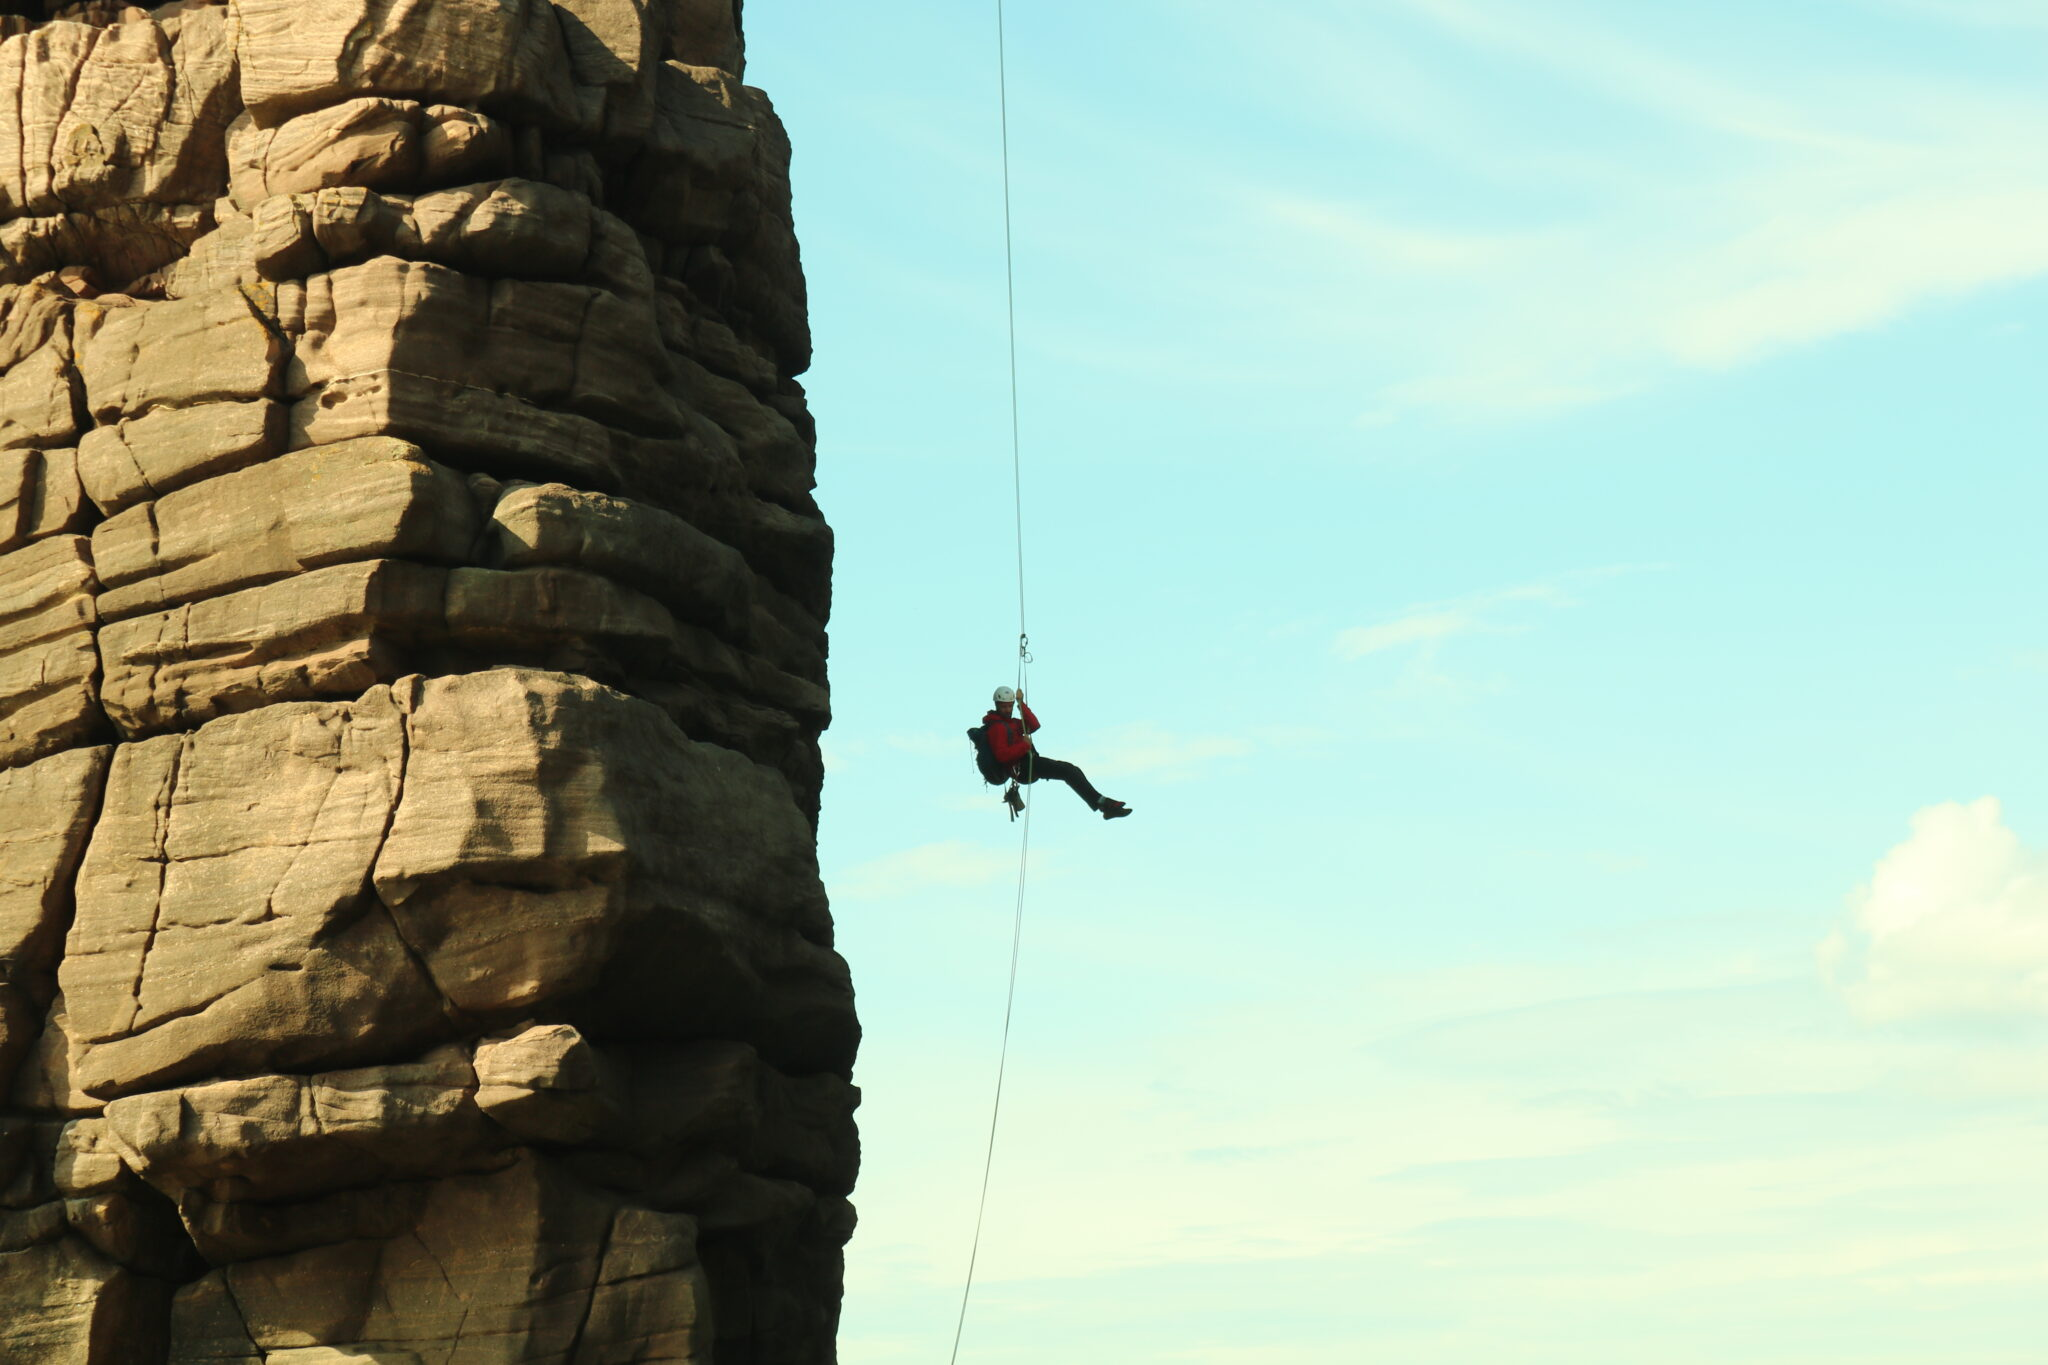 Outdoor Instructor training abseiling